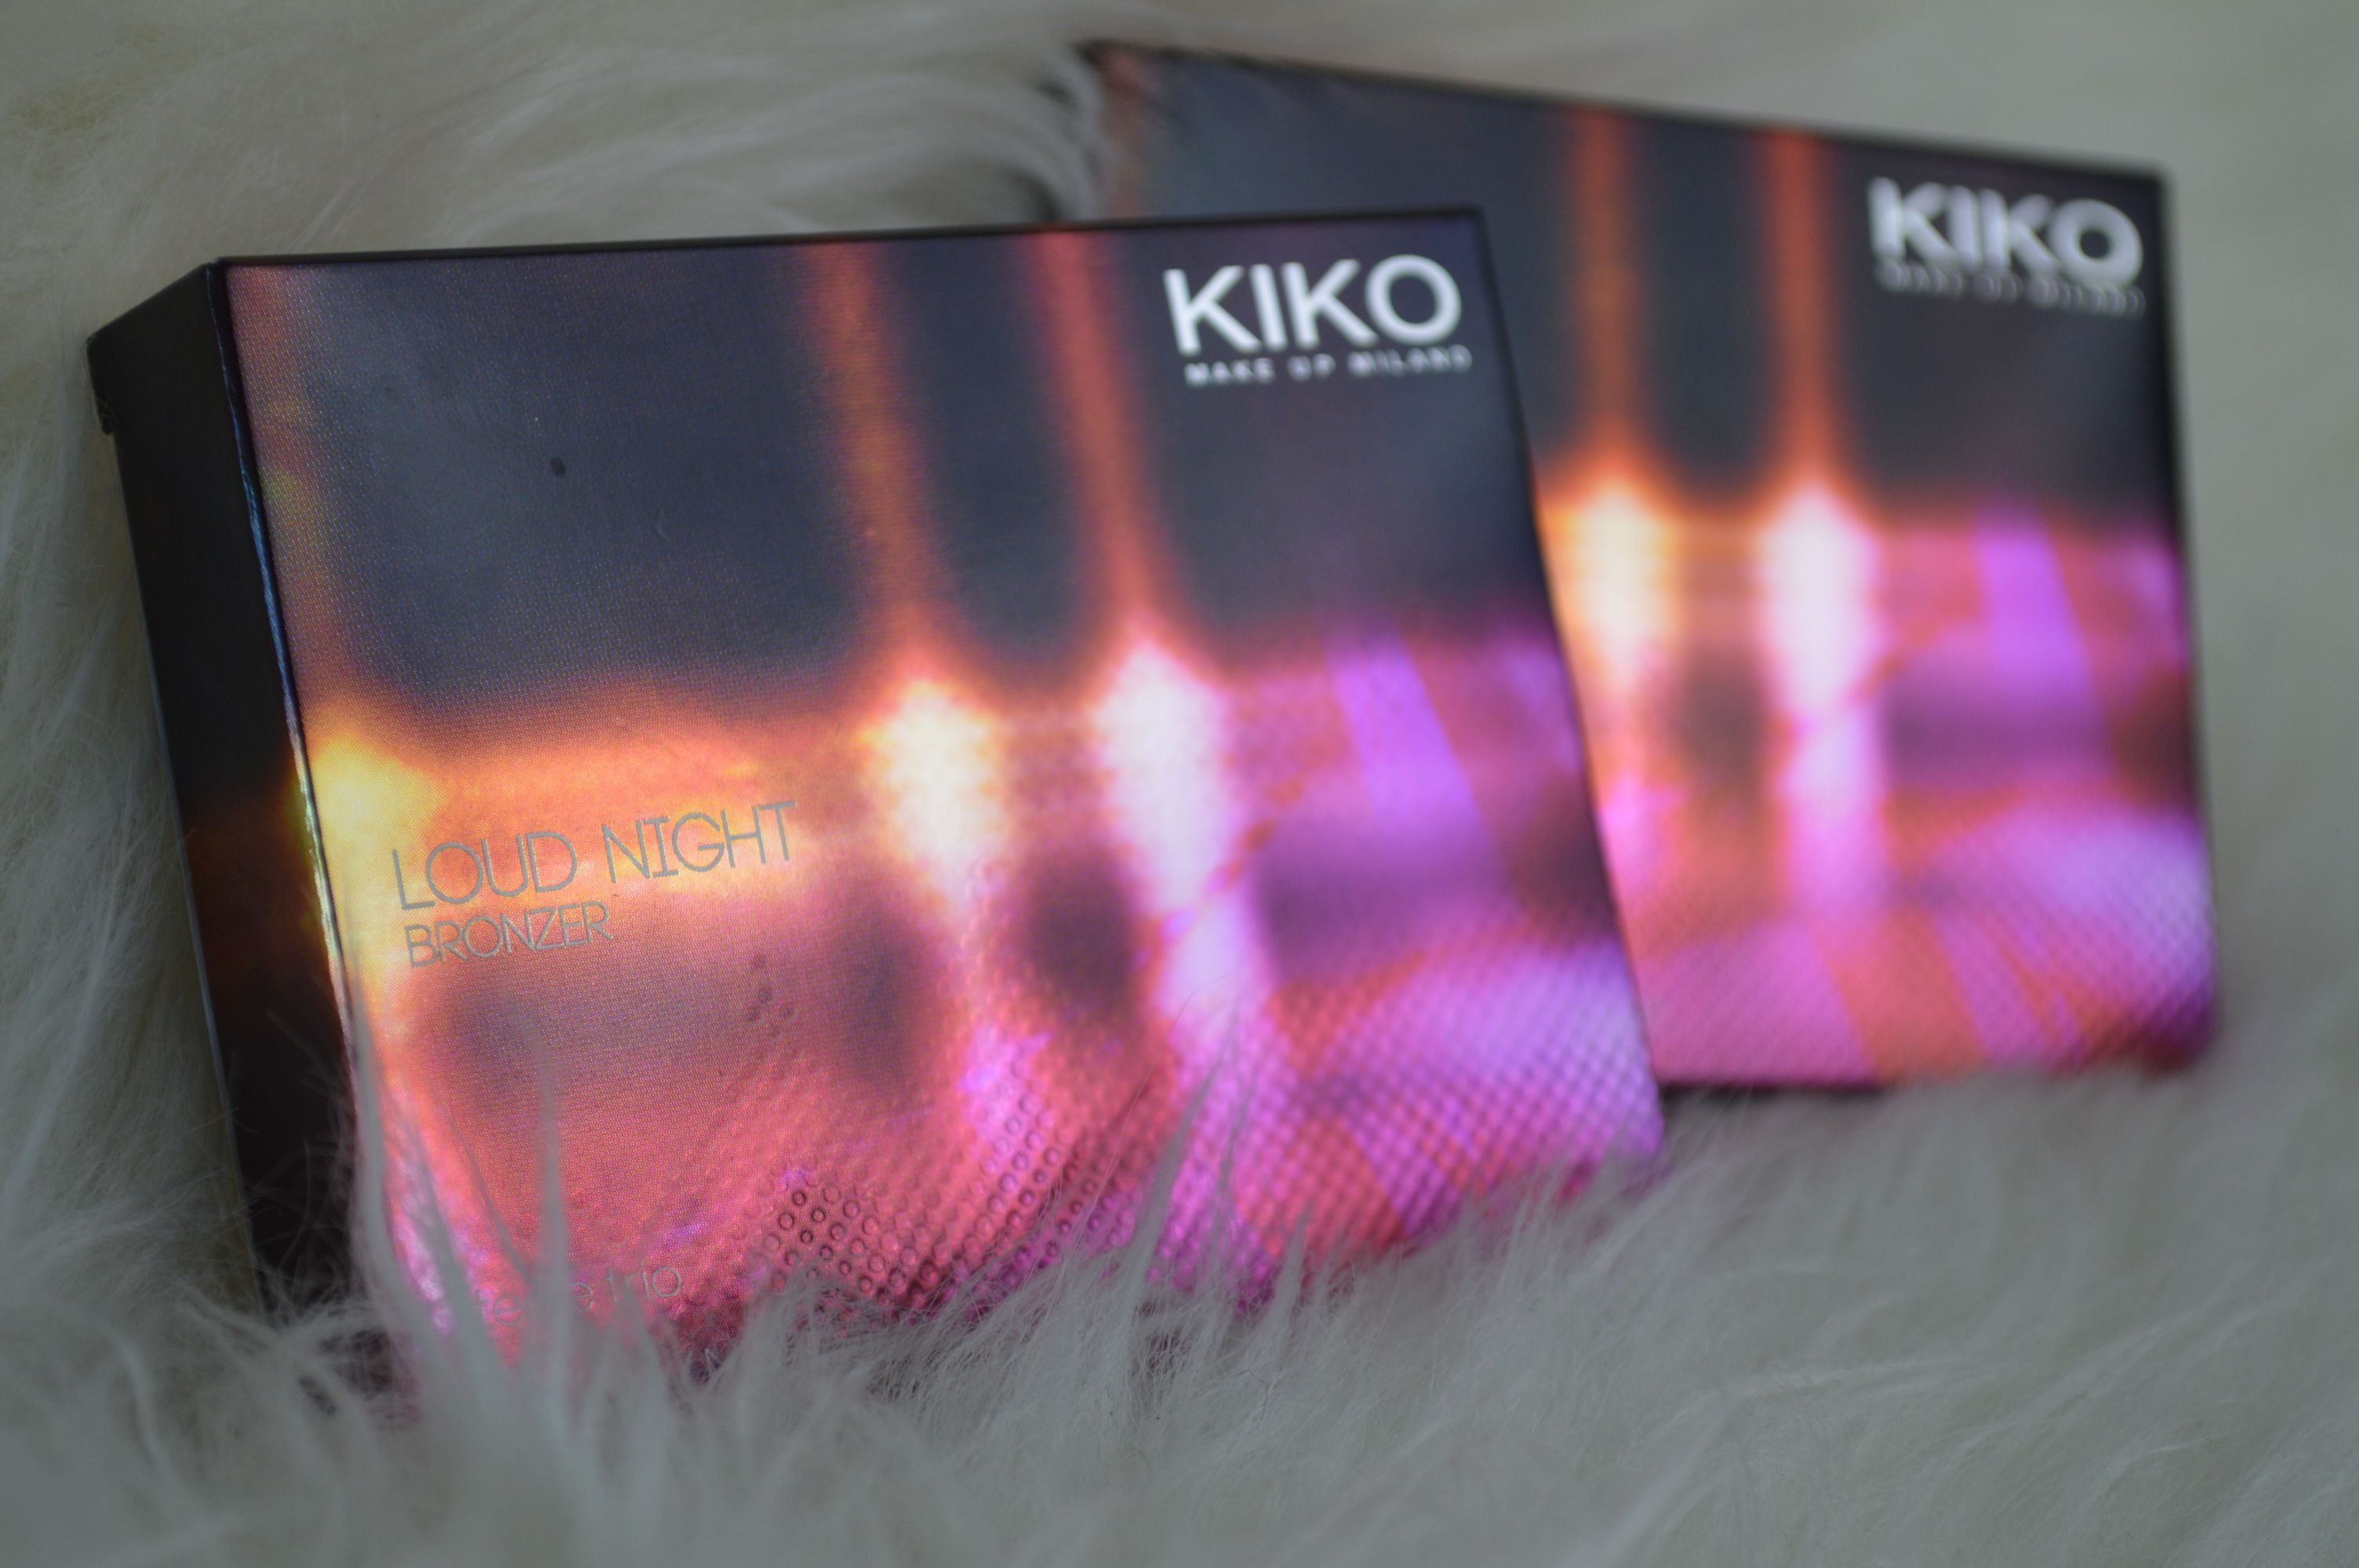 Kiko Loud Night Bronzer